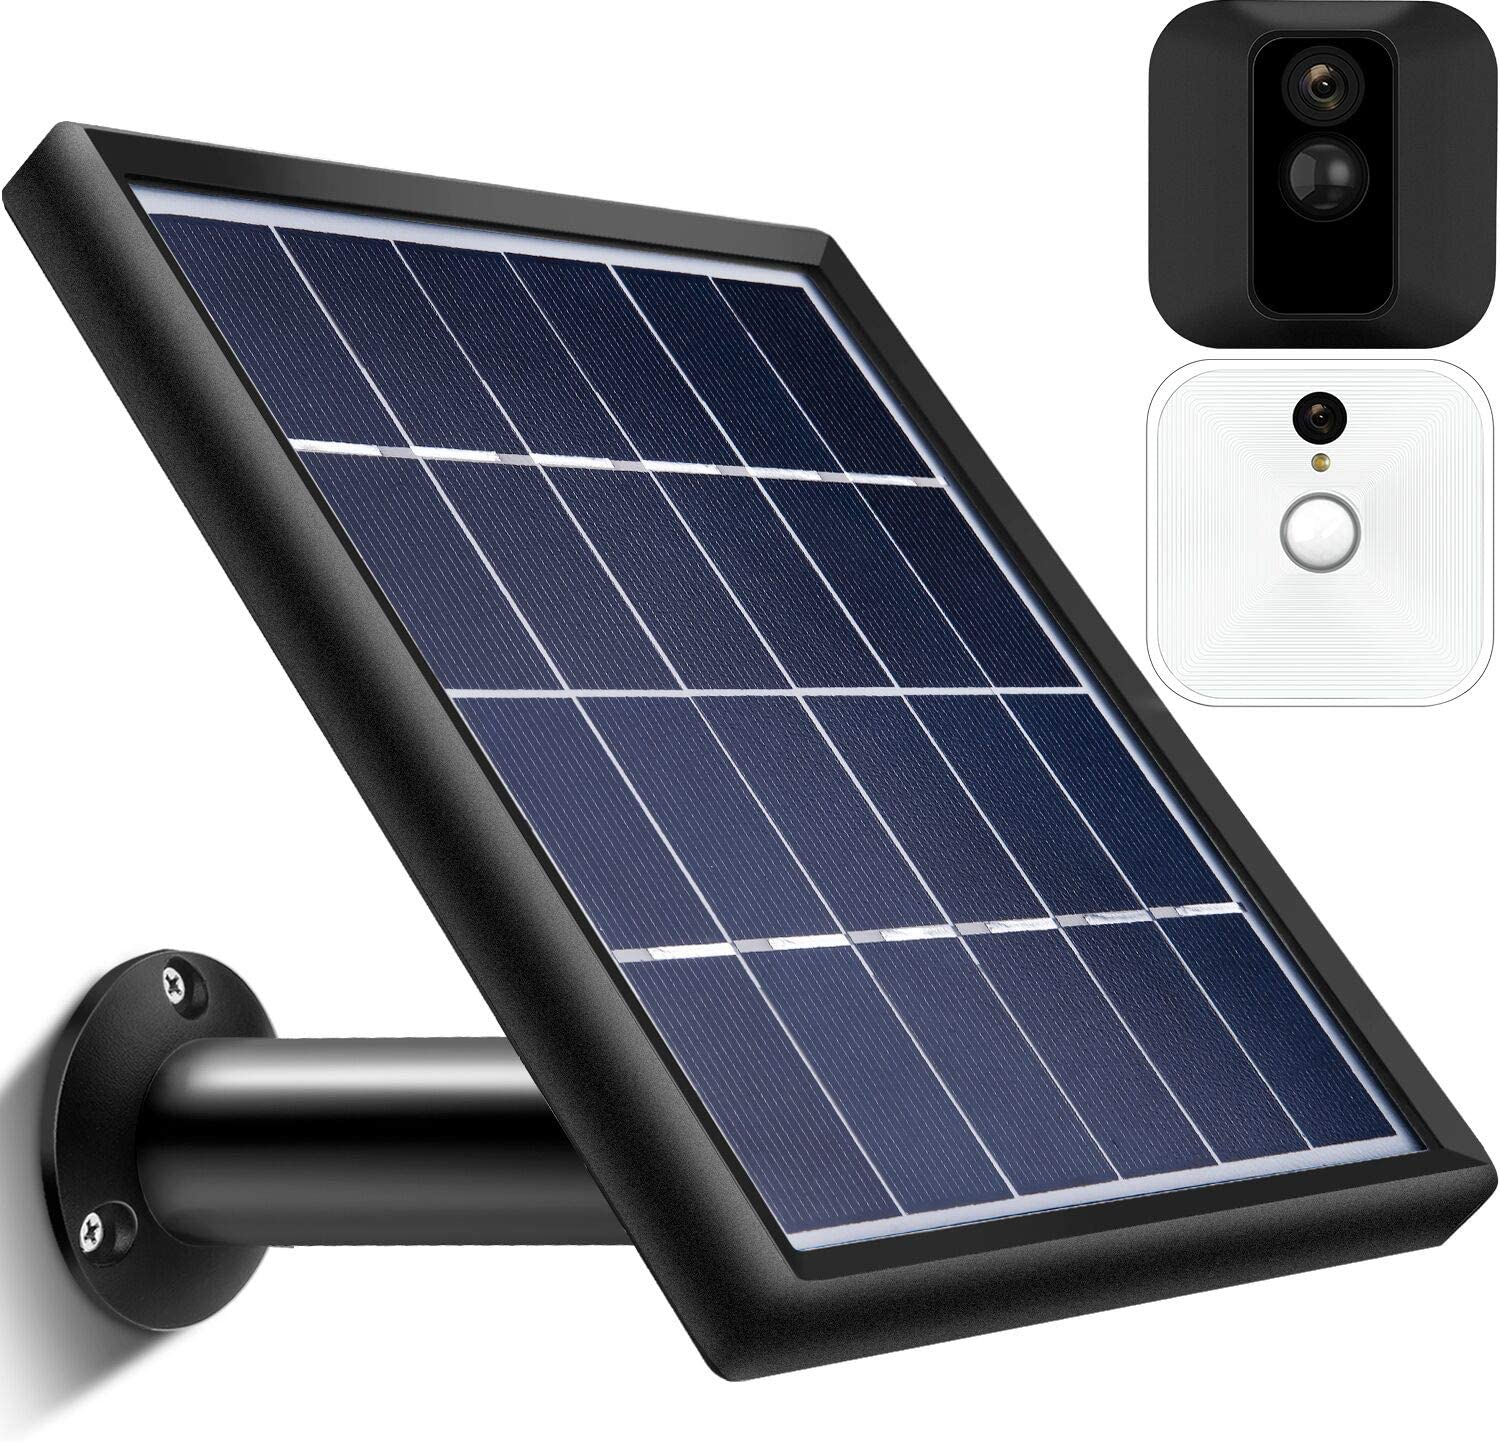 Solar Panel Compatible with Blink XT XT2 Outdoor Indoor Security Camera